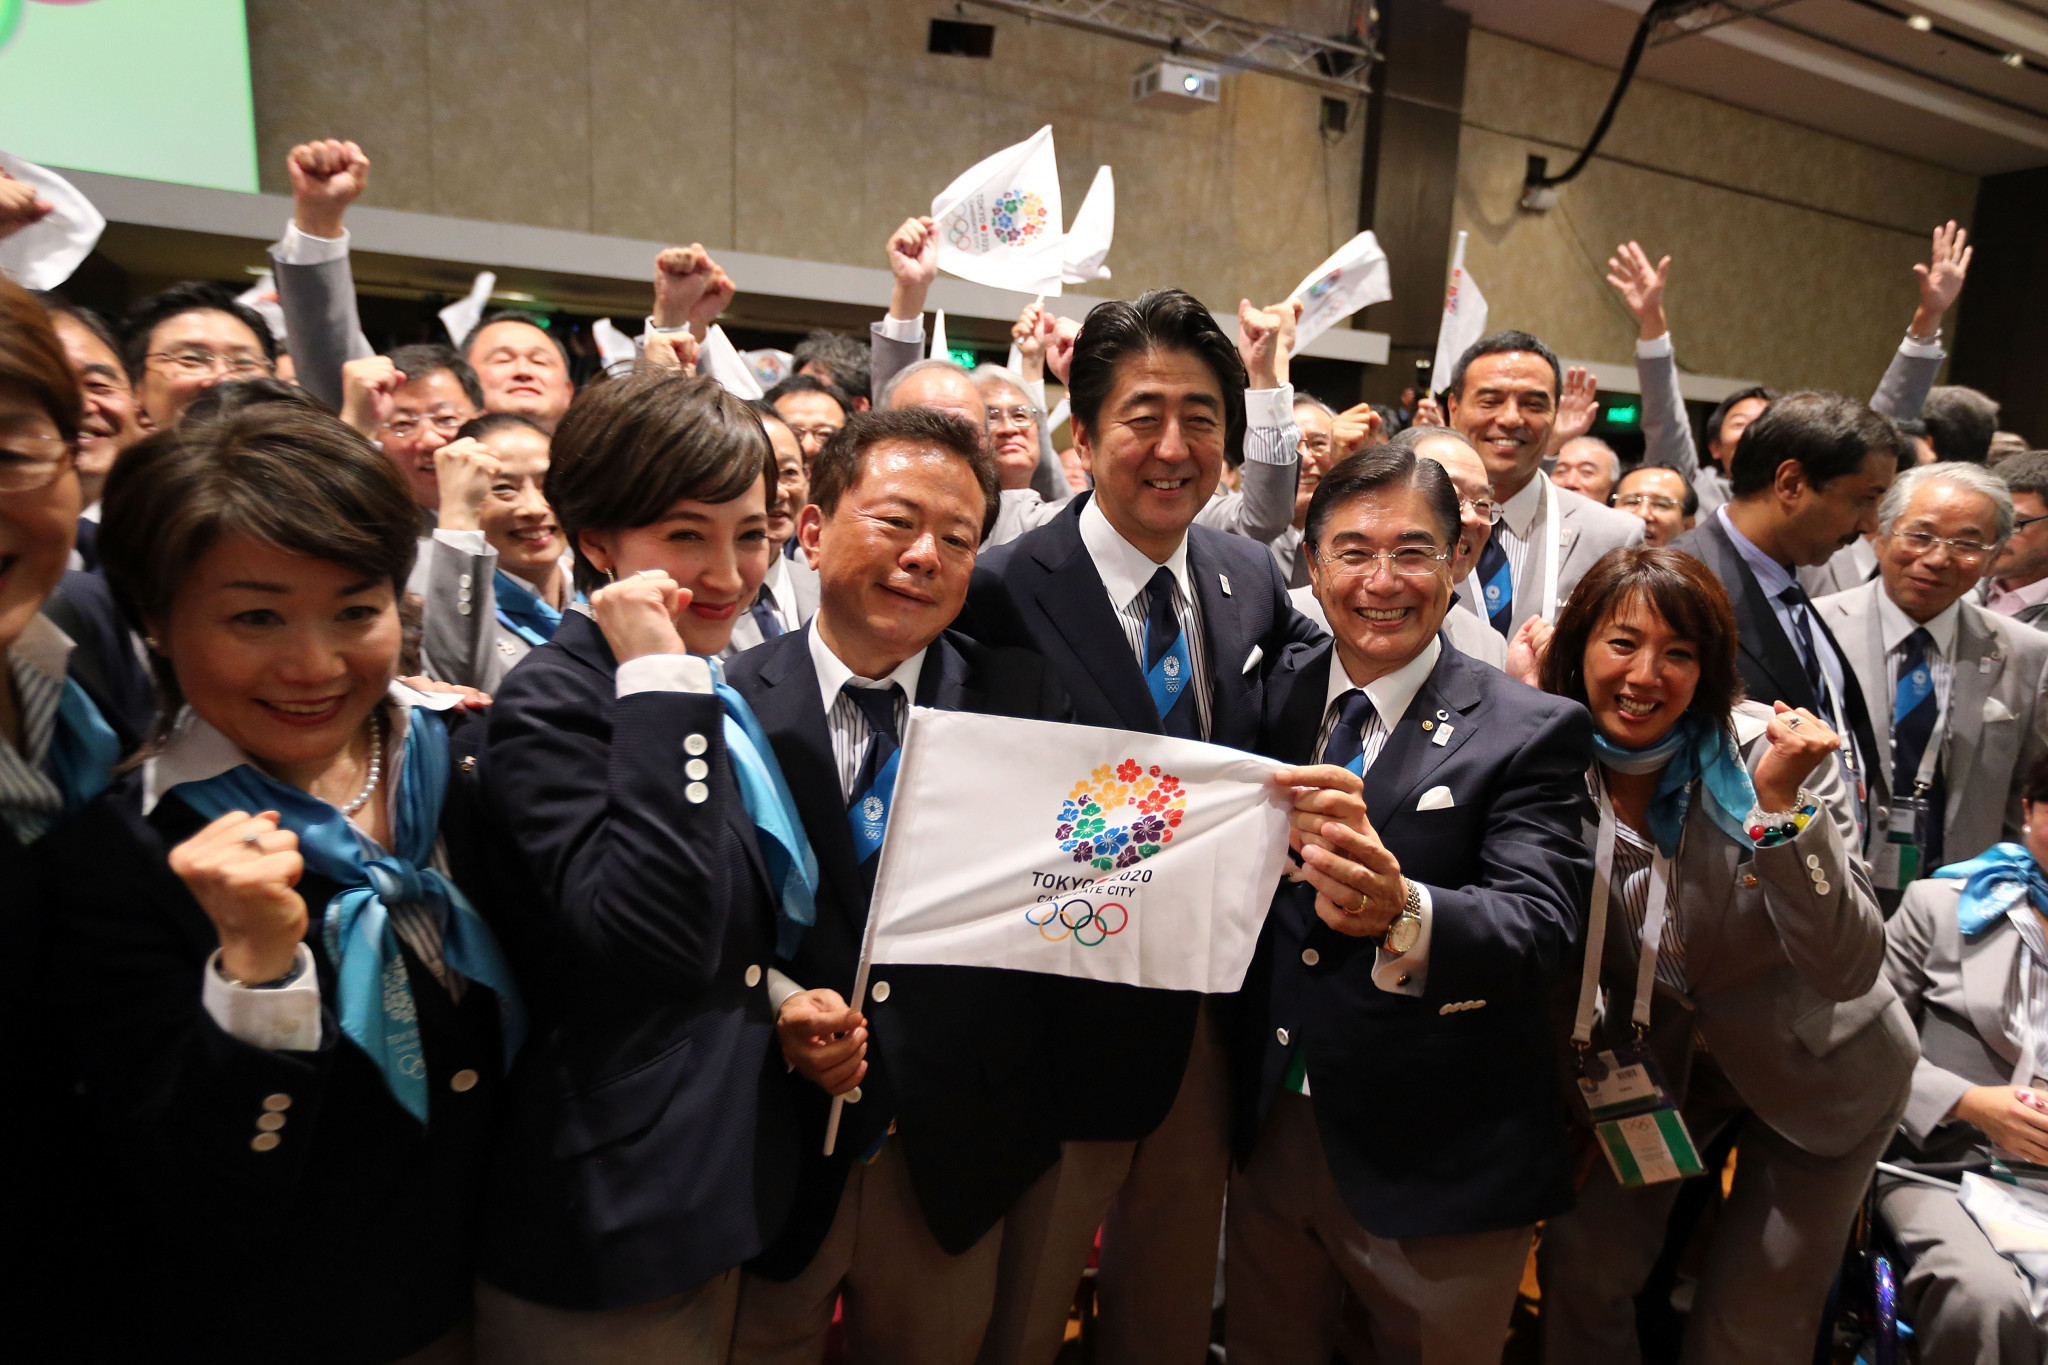 Shinzō Abe spoke in behalf of the Tokyo 2020 bid at the IOC Session in 2013 ©Getty Images